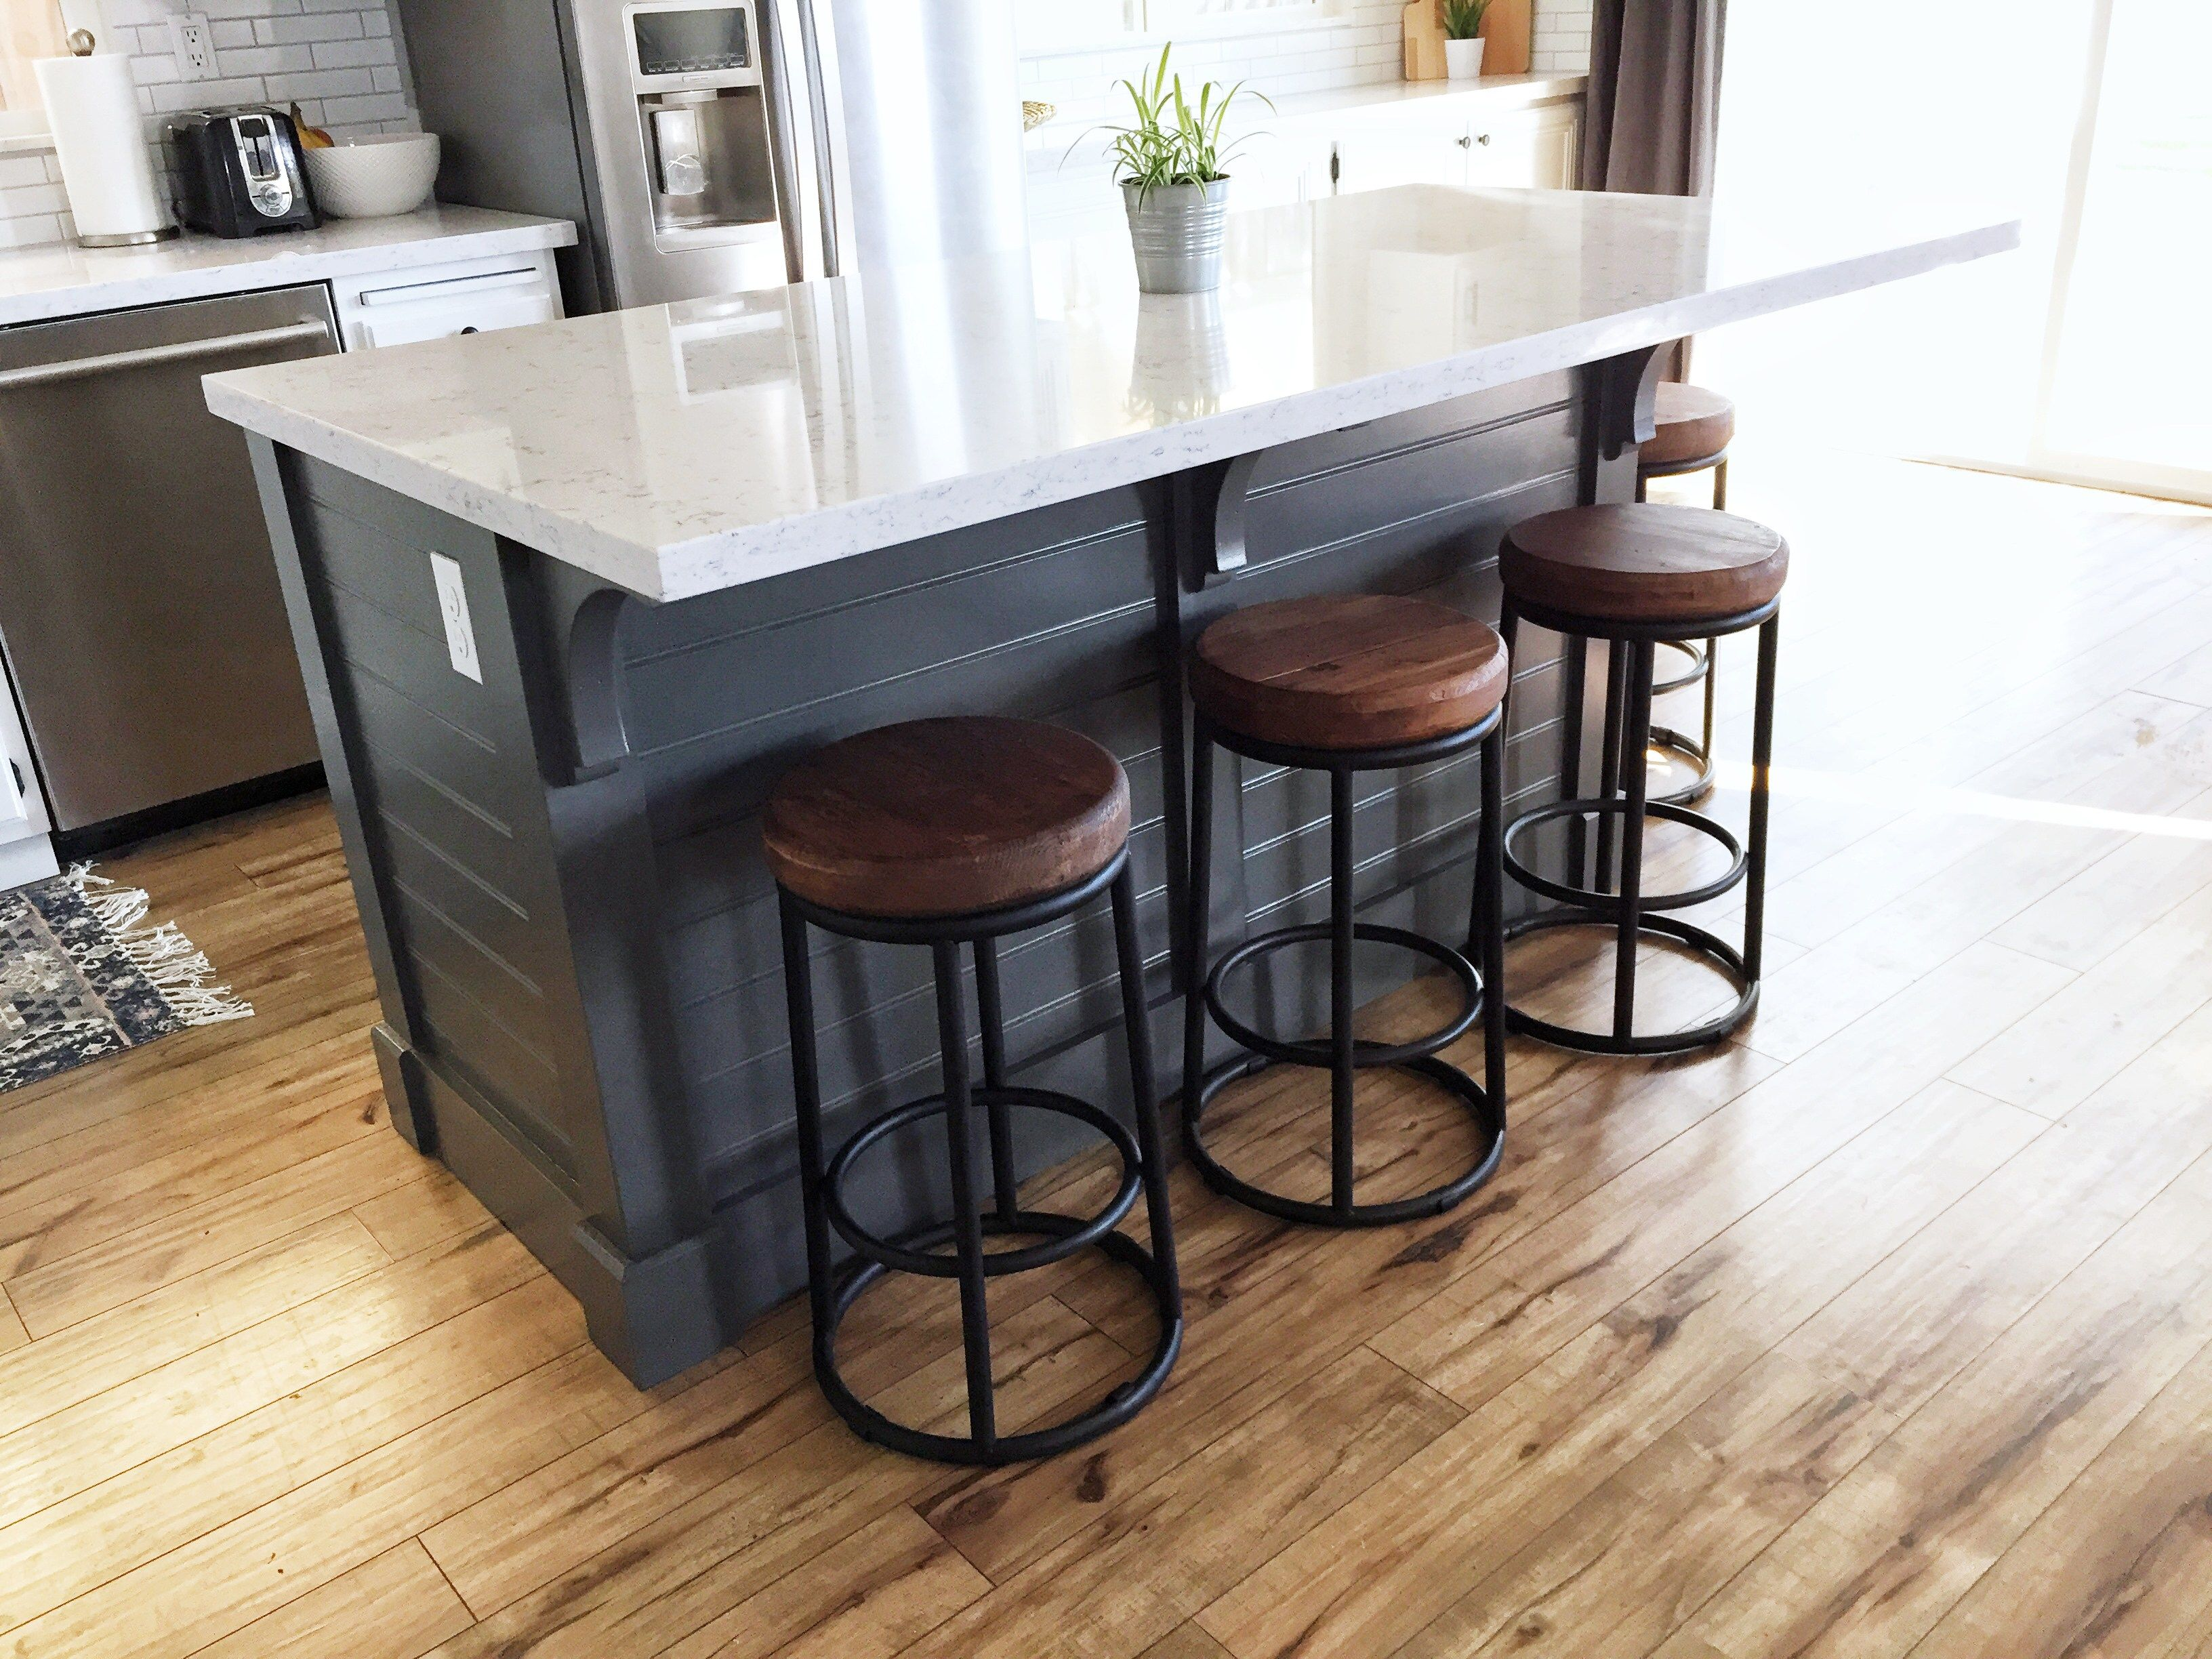 Kitchen Island Make it yourself Save Big Kitchens Diy kitchen